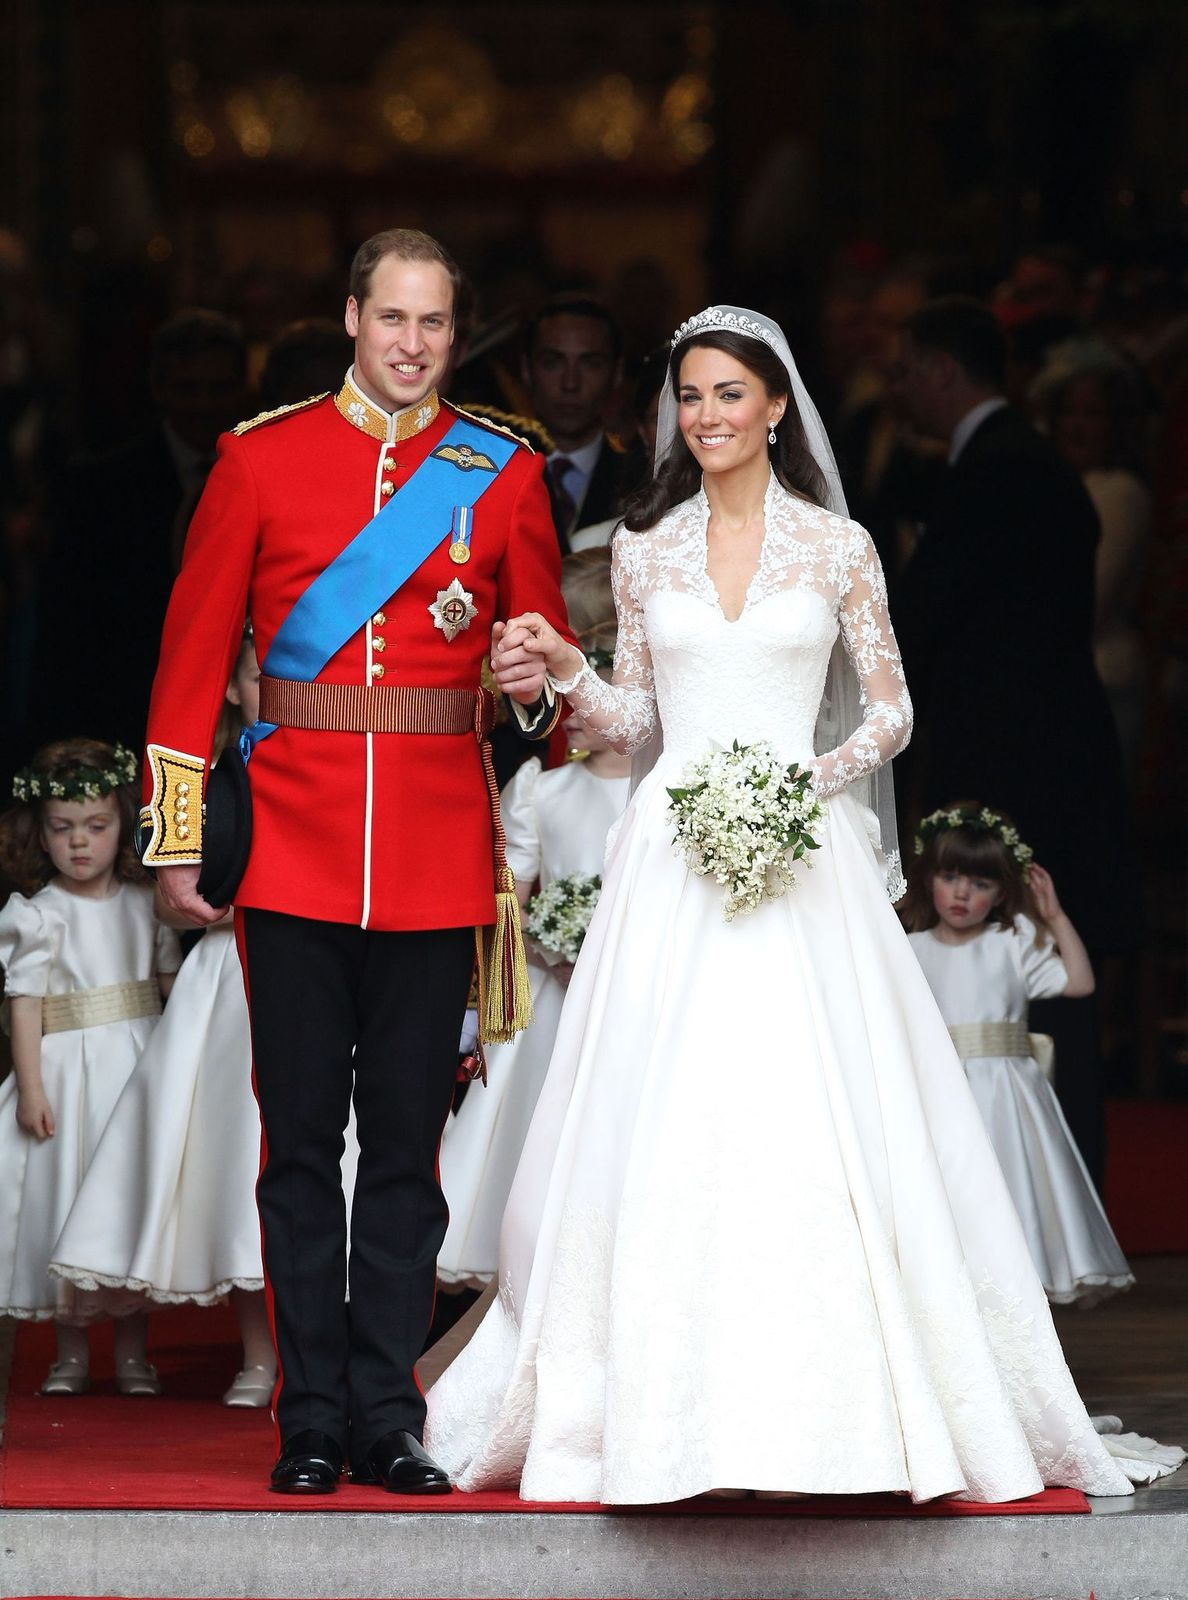 Prince William and Kate Middleton smile following their marriage at Westminster Abbey on April 29, 2011 in London, England. | Photo: Getty Images